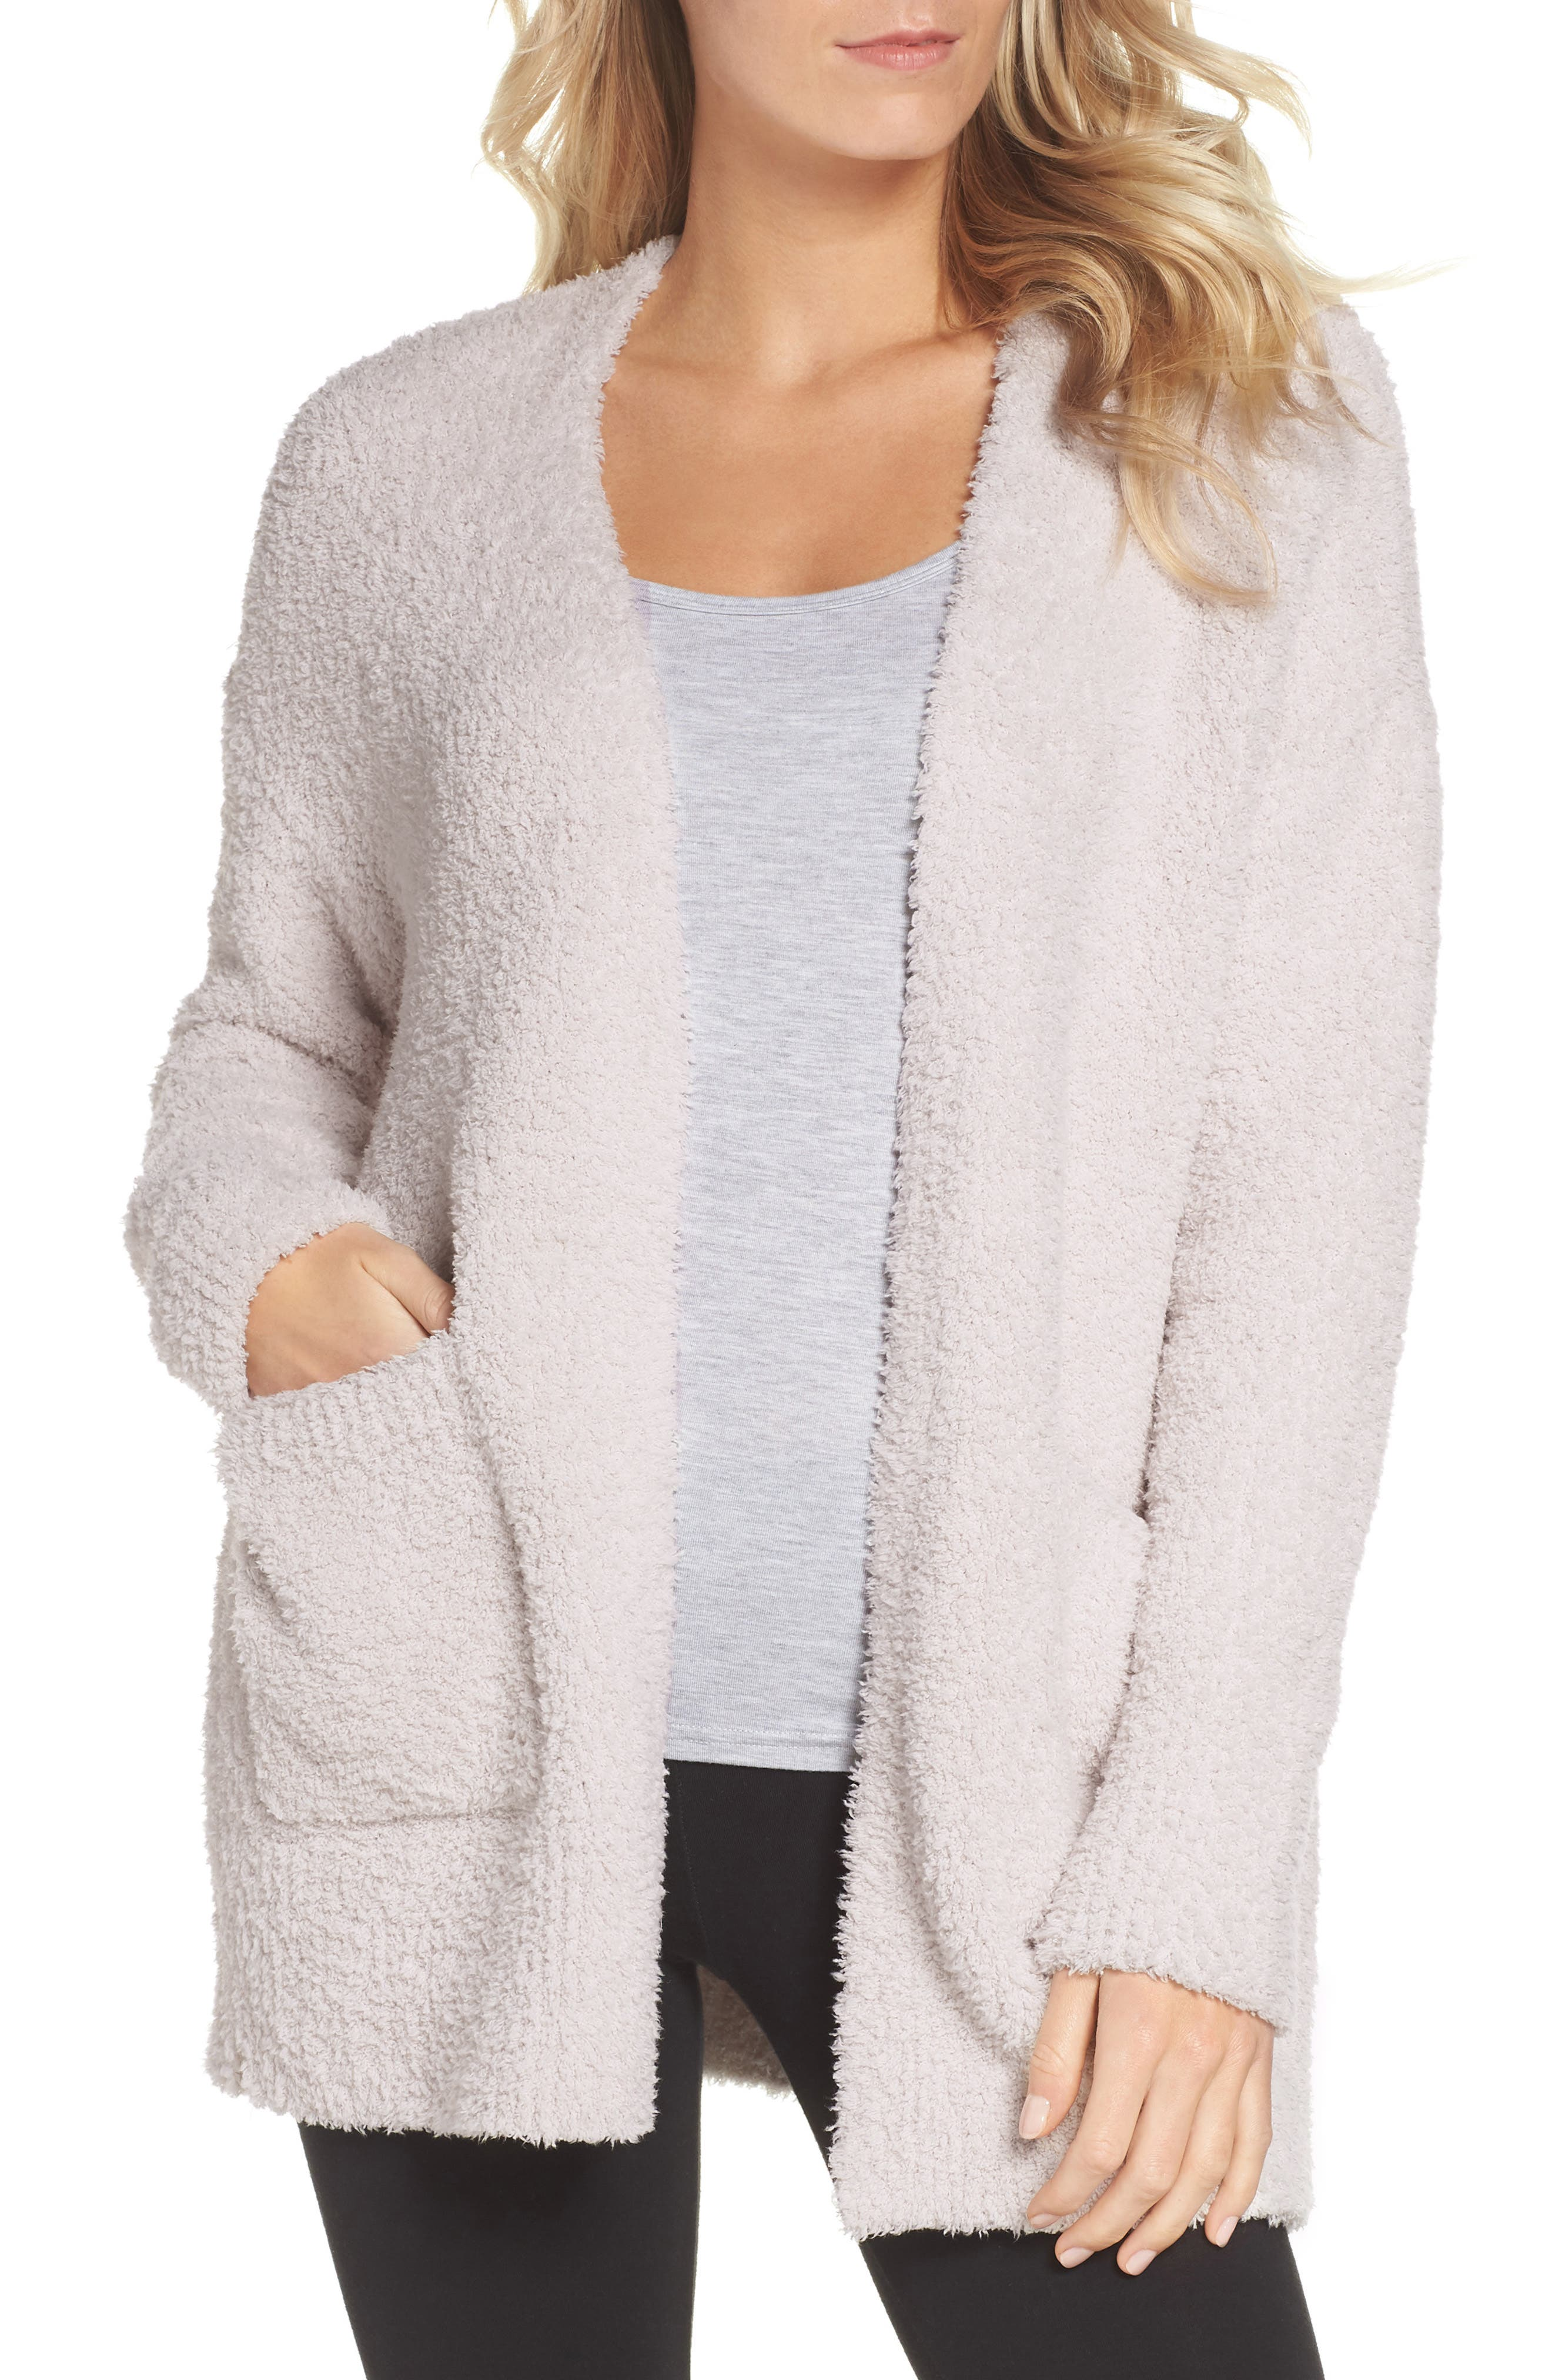 CozyChic<sup>®</sup> Cardigan,                         Main,                         color, ALMOND